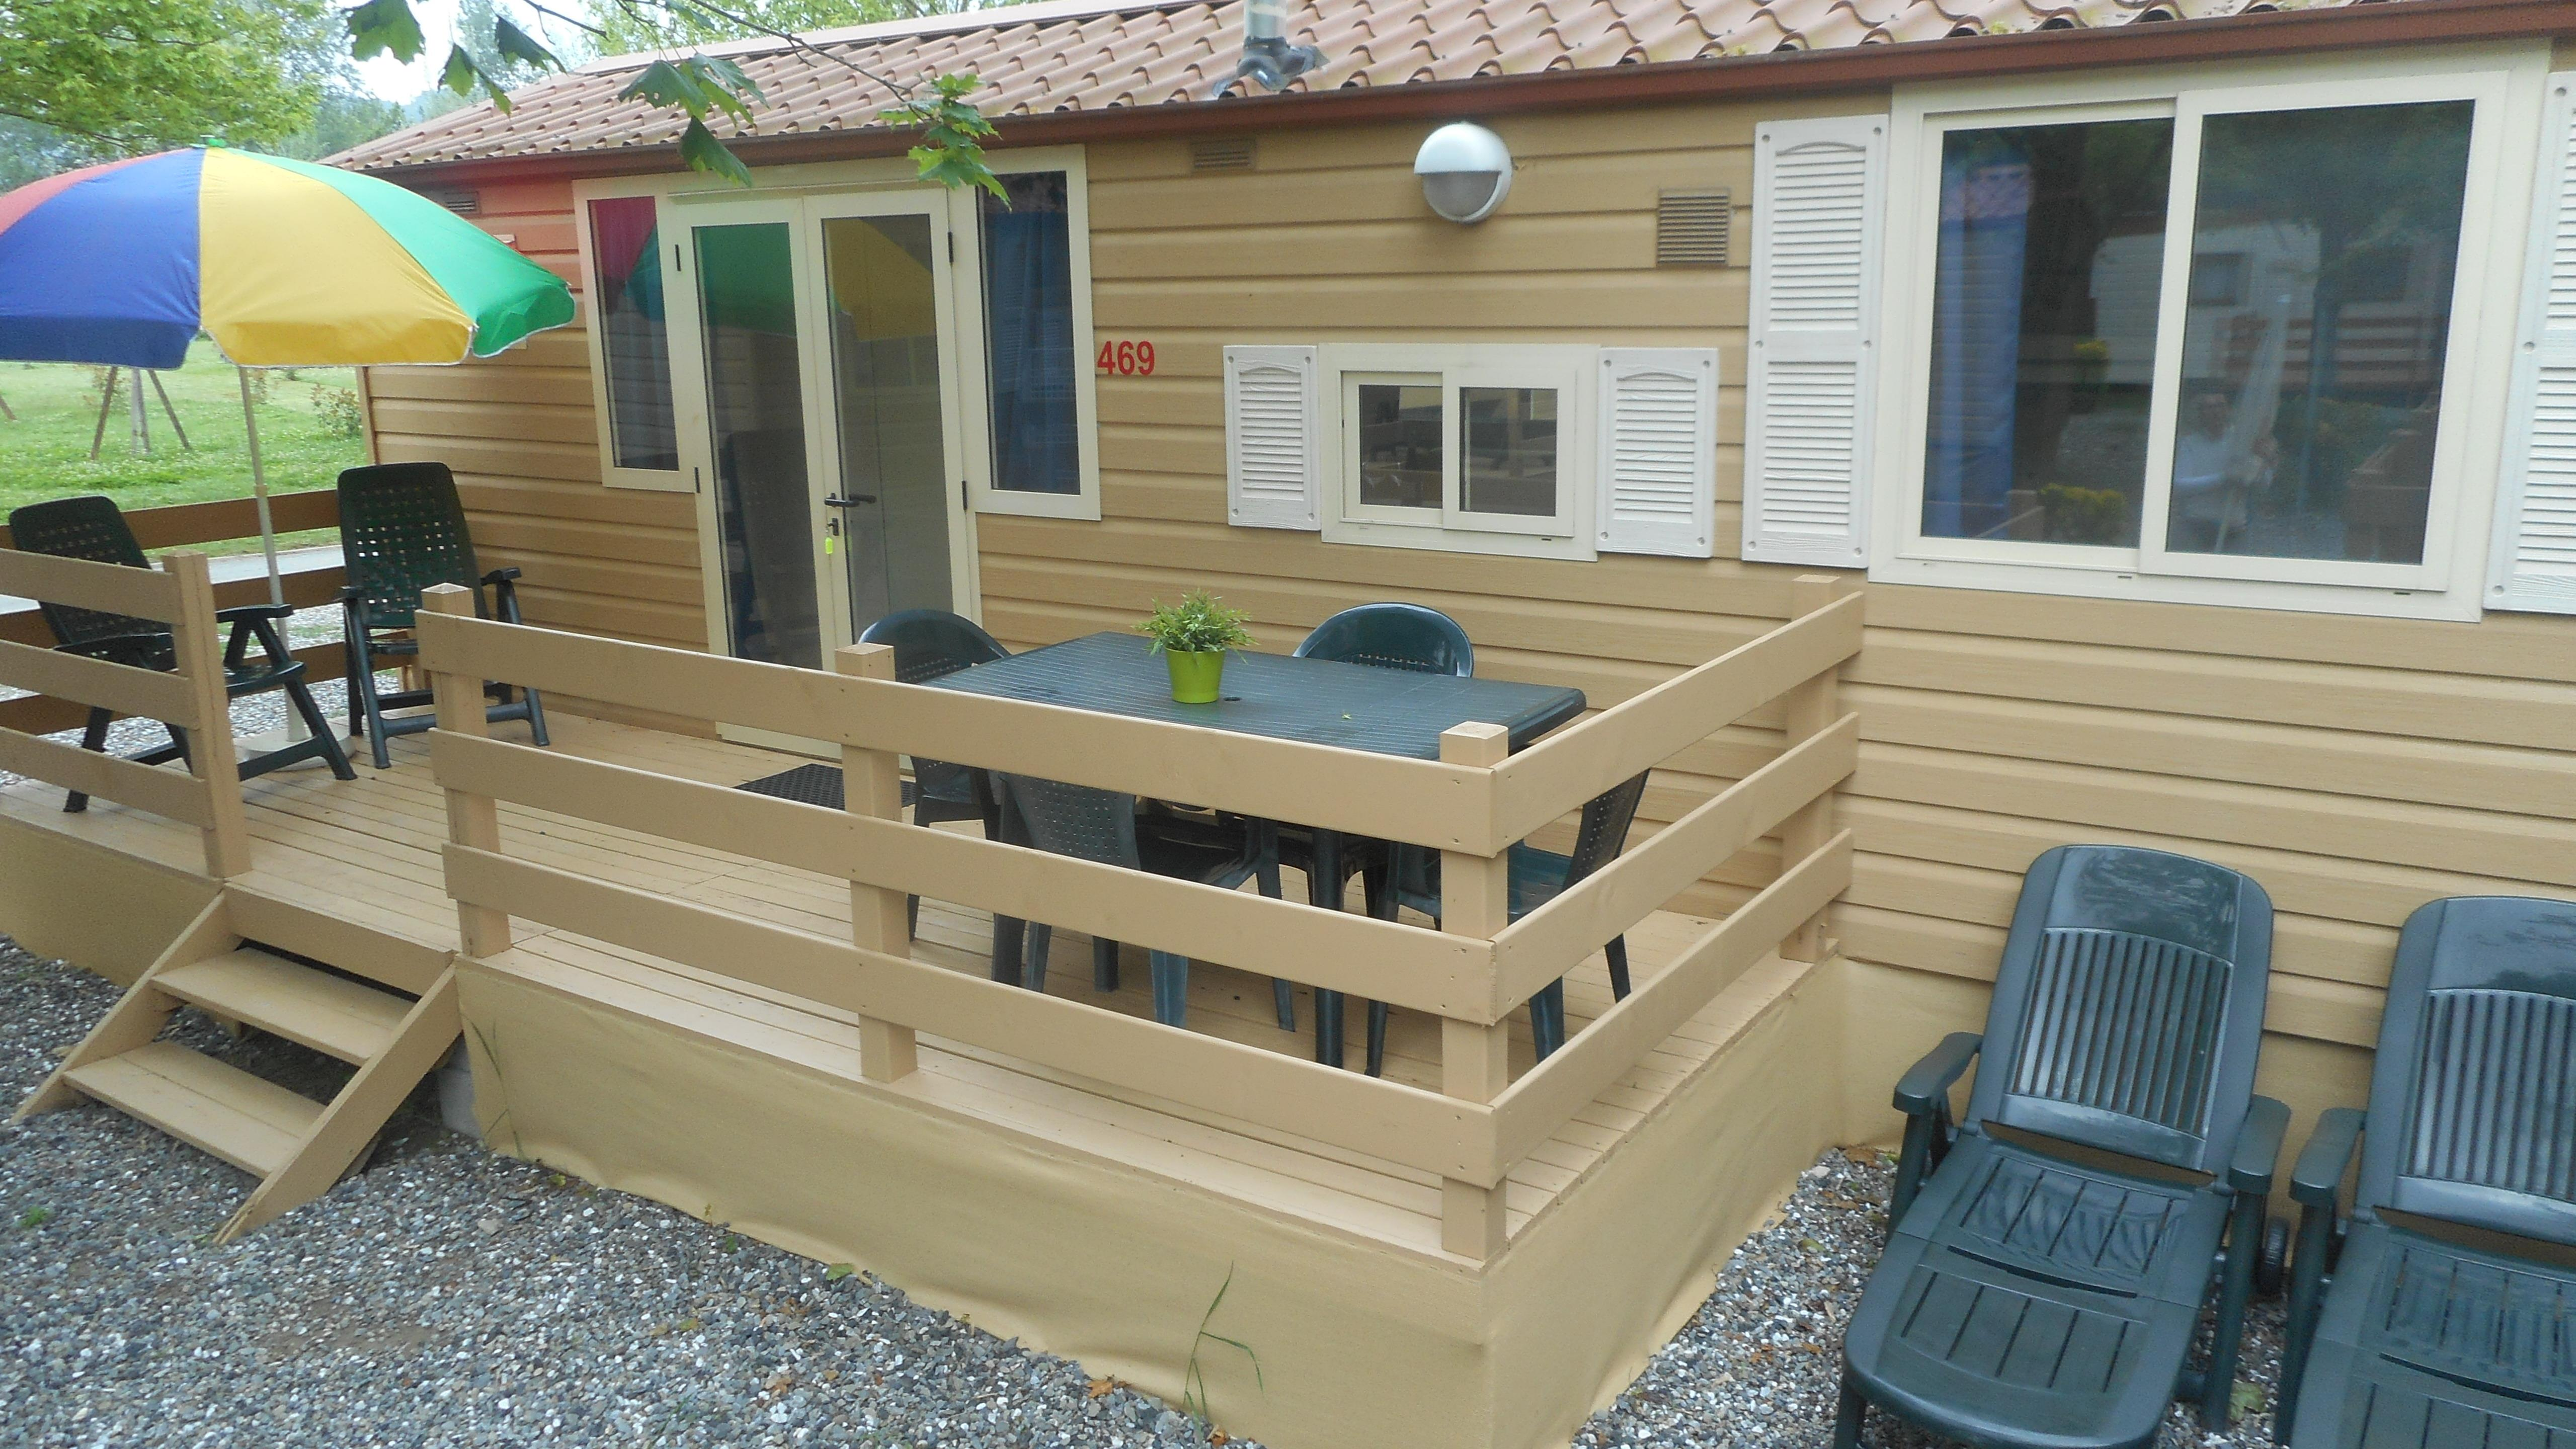 Huuraccommodaties - Mobil Home Comfort - Camping River